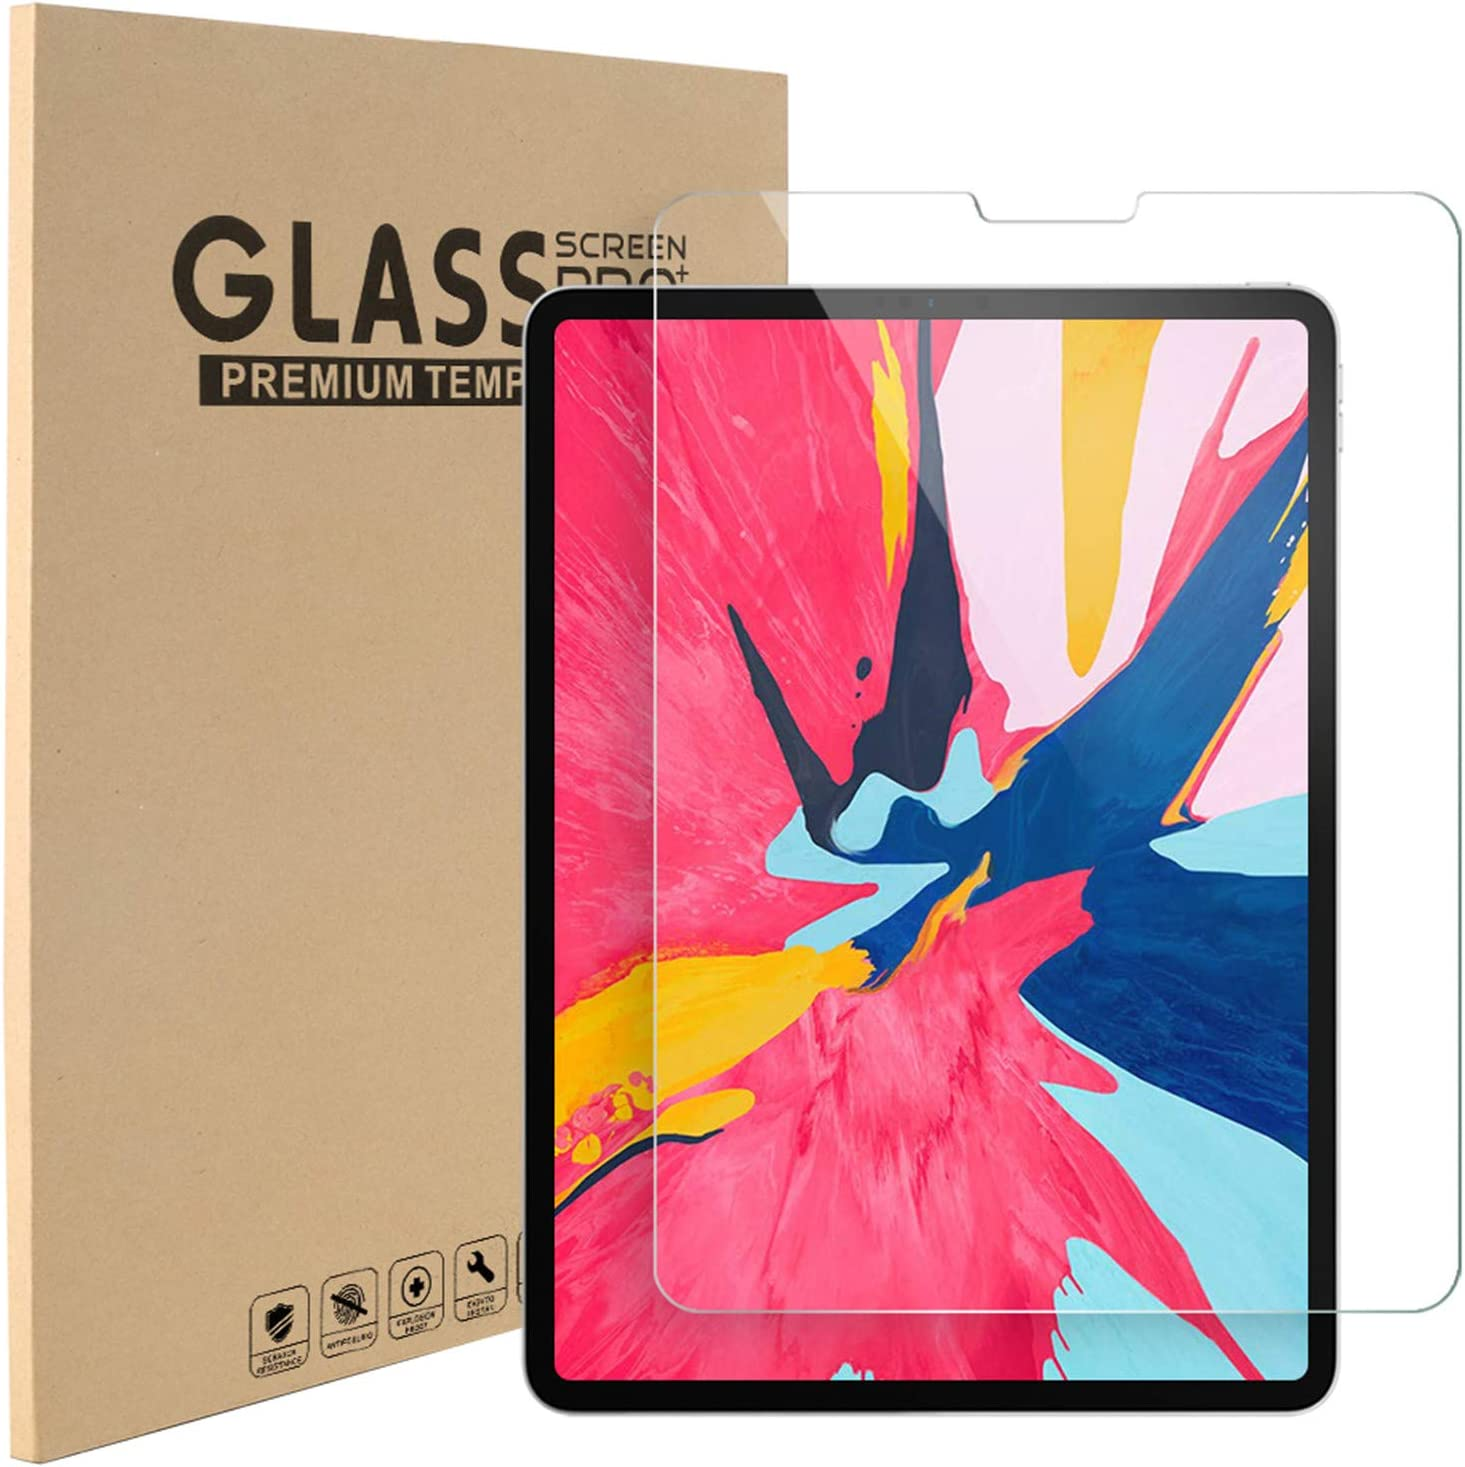 2 Pack Tempered Glass Screen Protector for iPad Pro 11, 9H Hard 0.30mm Bubble-Free Anti-Scratch Clear High Sensitivity Glass Film for Apple iPad Pro 11 2018 & 2020, Apple Pencil & Face ID Compatible